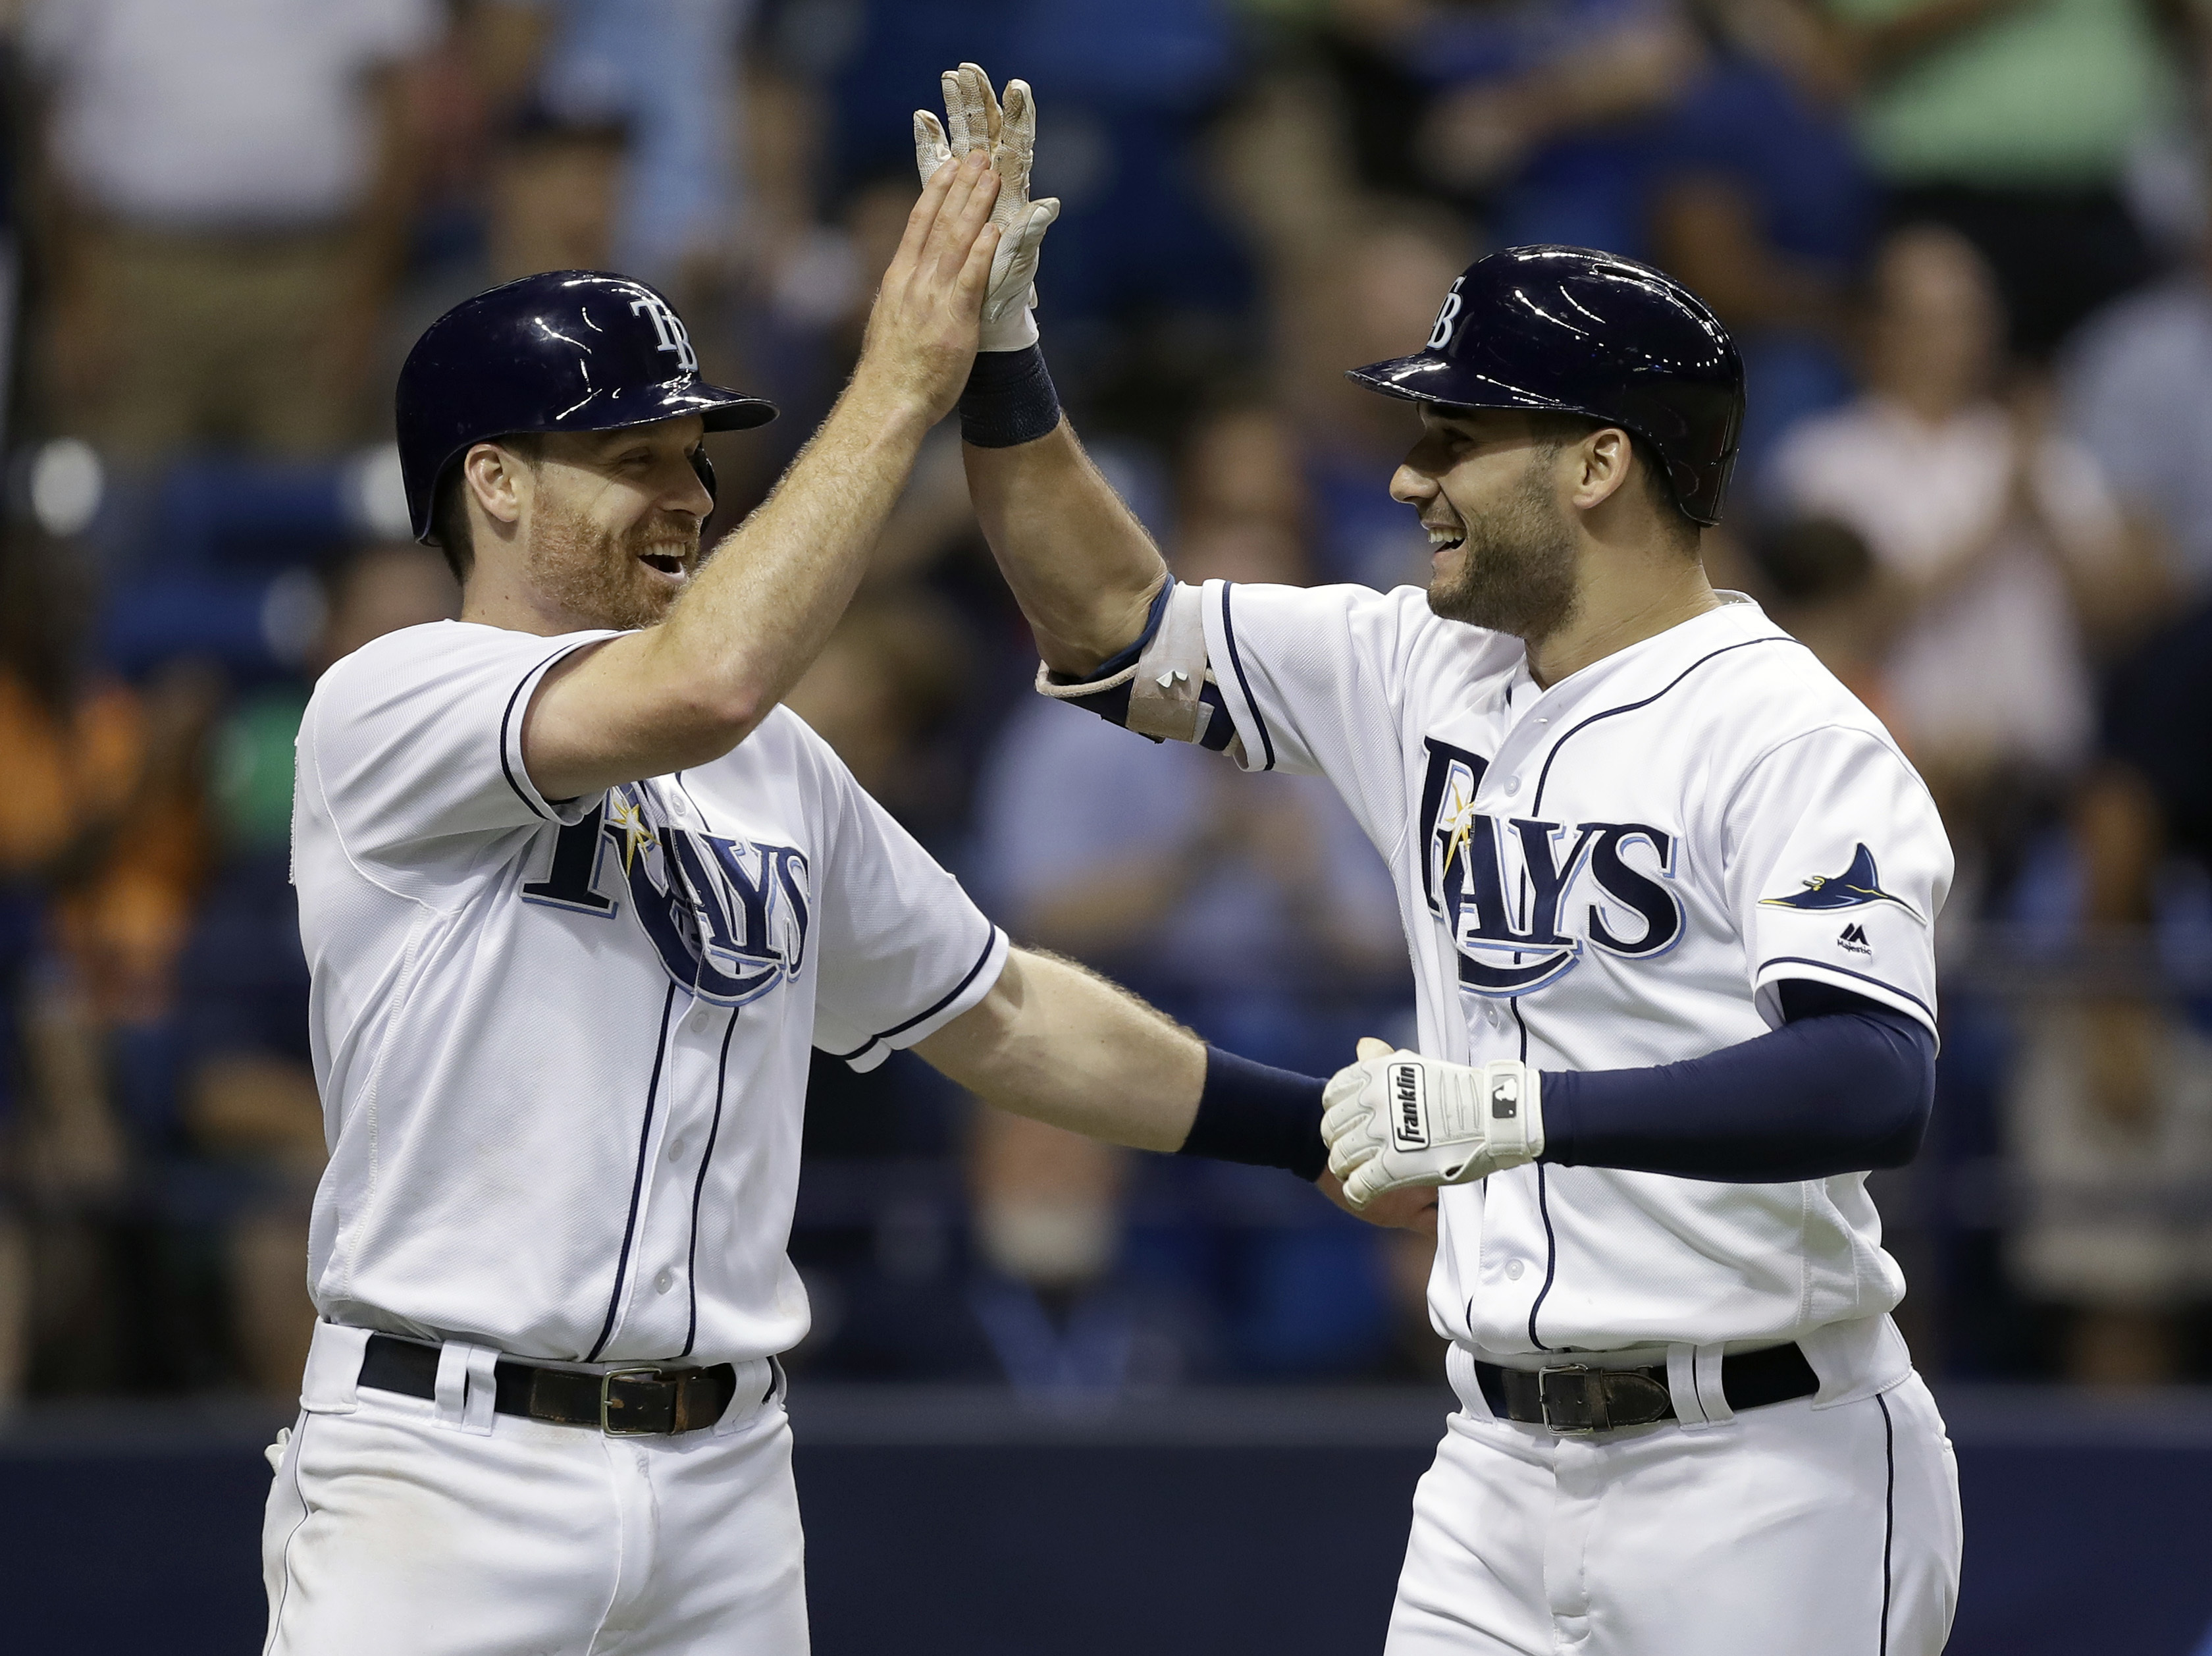 Tampa Bay Rays' Kevin Kiermaier, right, celebrates his two-run home run off Toronto Blue Jays relief pitcher Joe Biagini with teammate Logan Forsythe during the seventh inning of a baseball game Saturday, Sept. 3, 2016, in St. Petersburg, Fla. (AP Photo/C